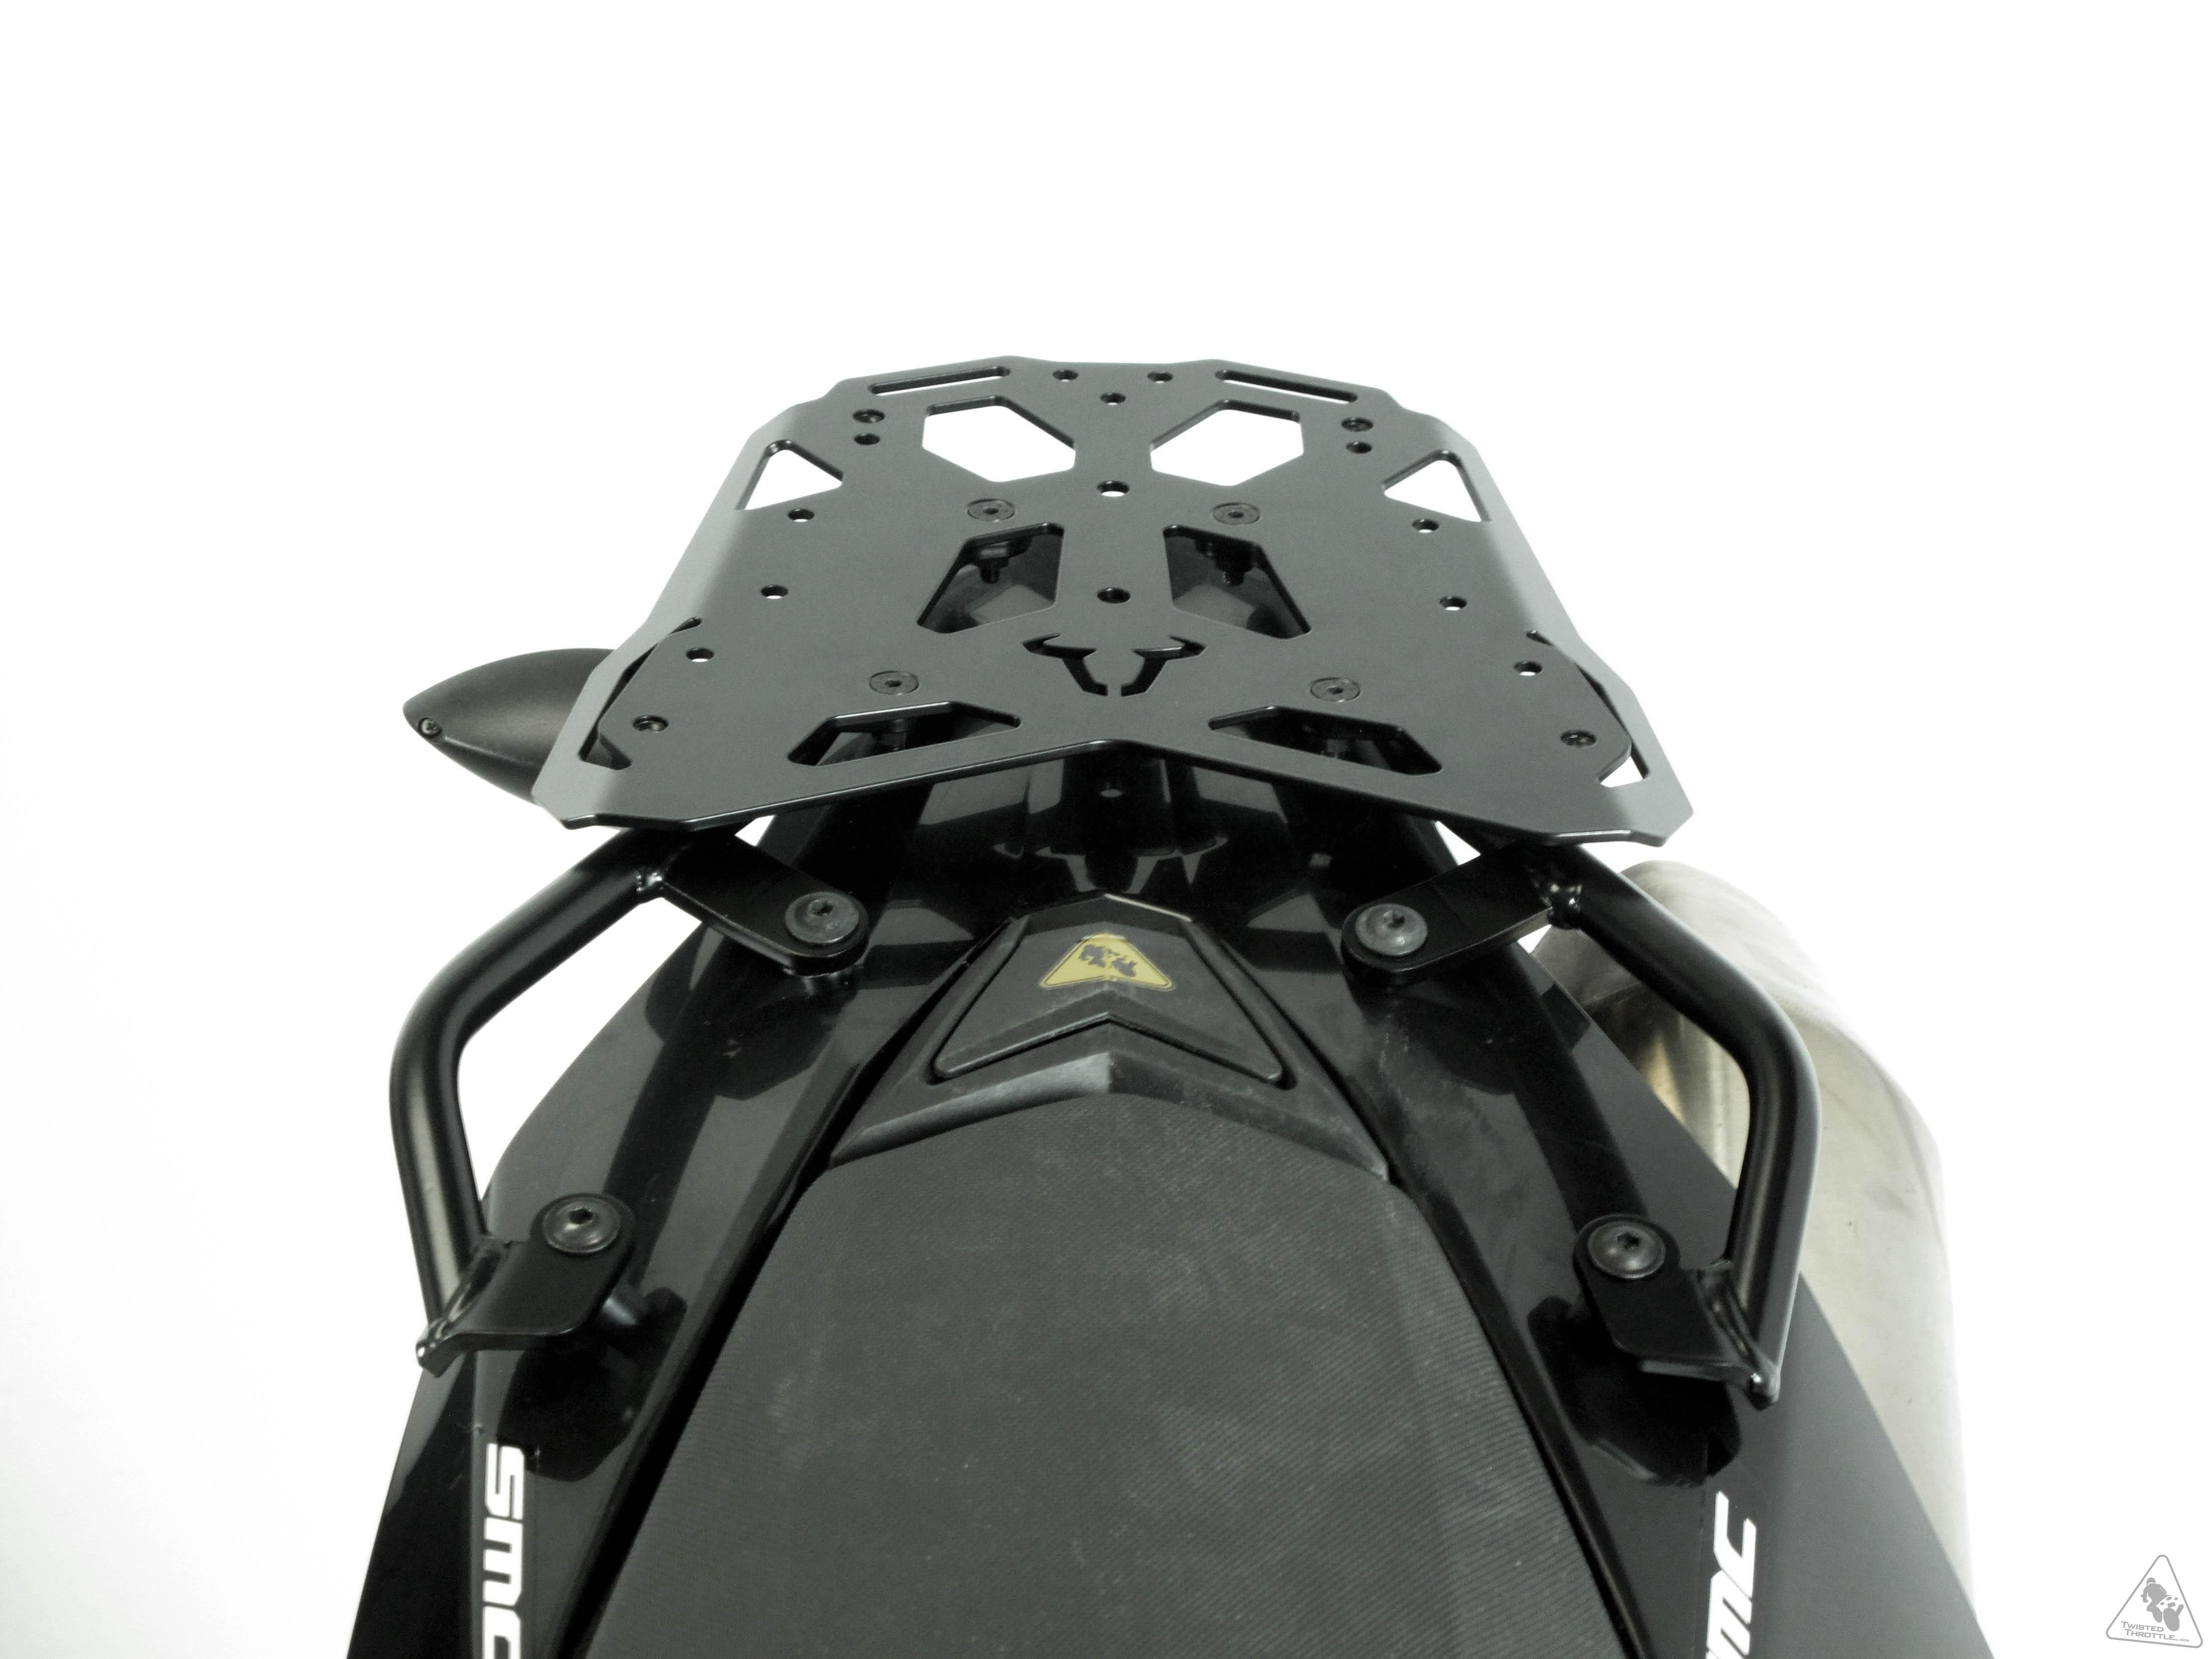 Sw Motech Steel Rack To Fit Many Top Case Styles For Ktm